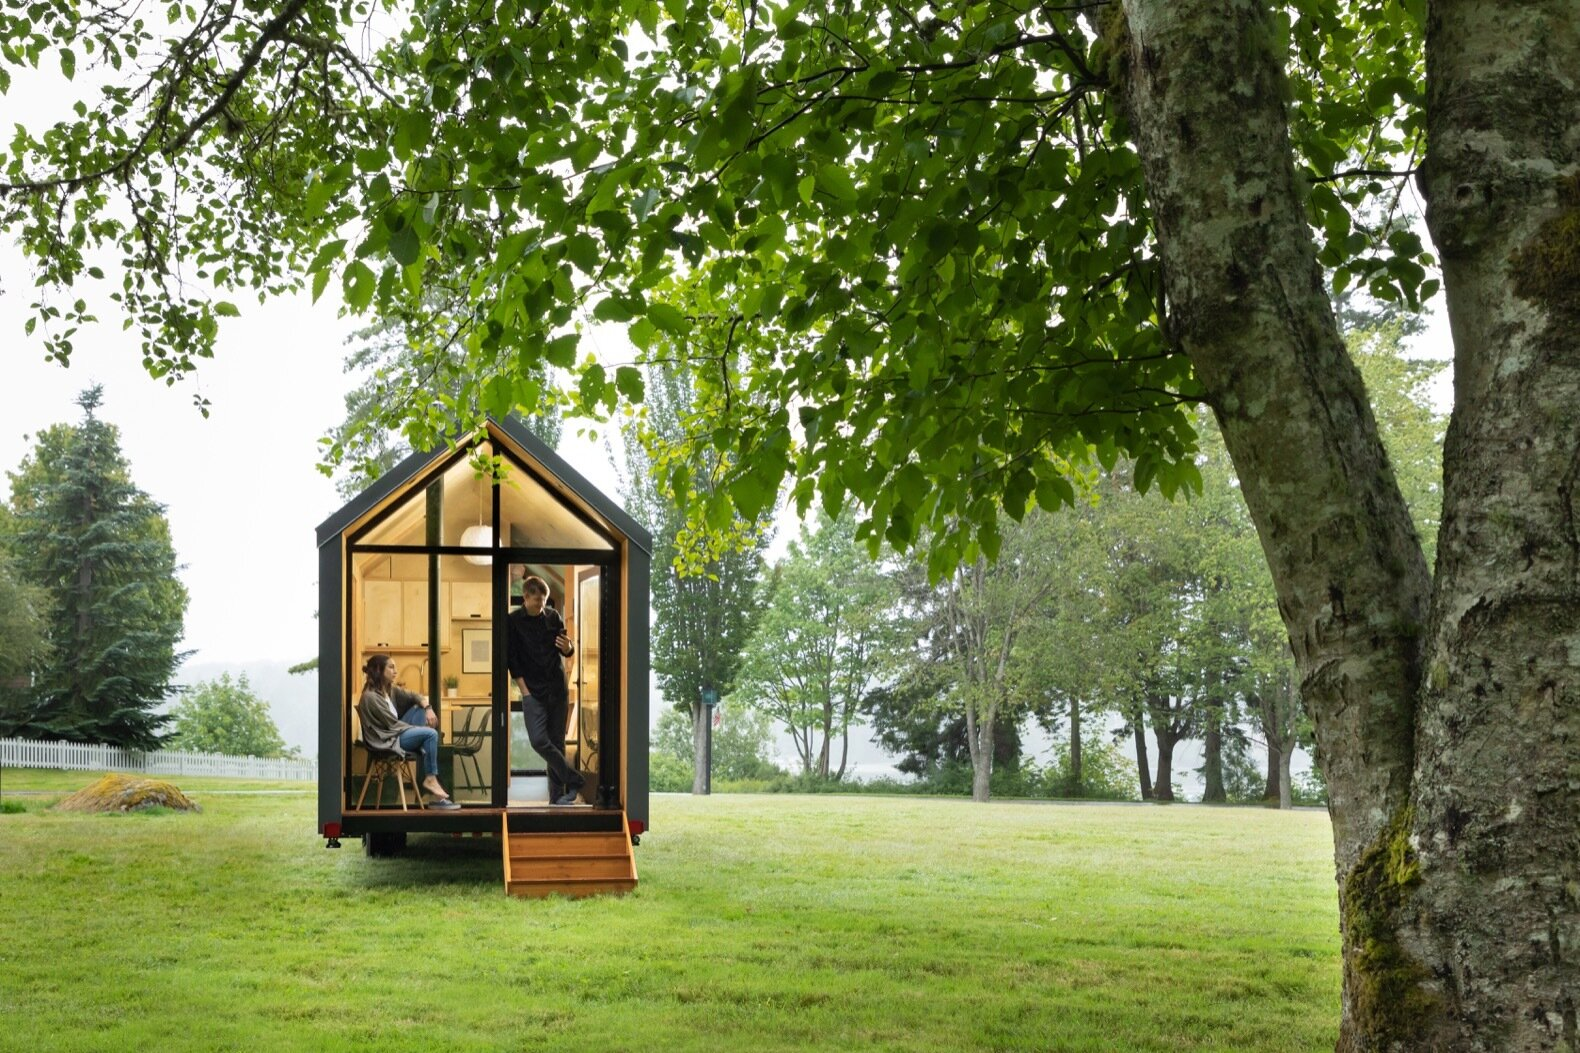 The DW by Modern Shed gable tiny house